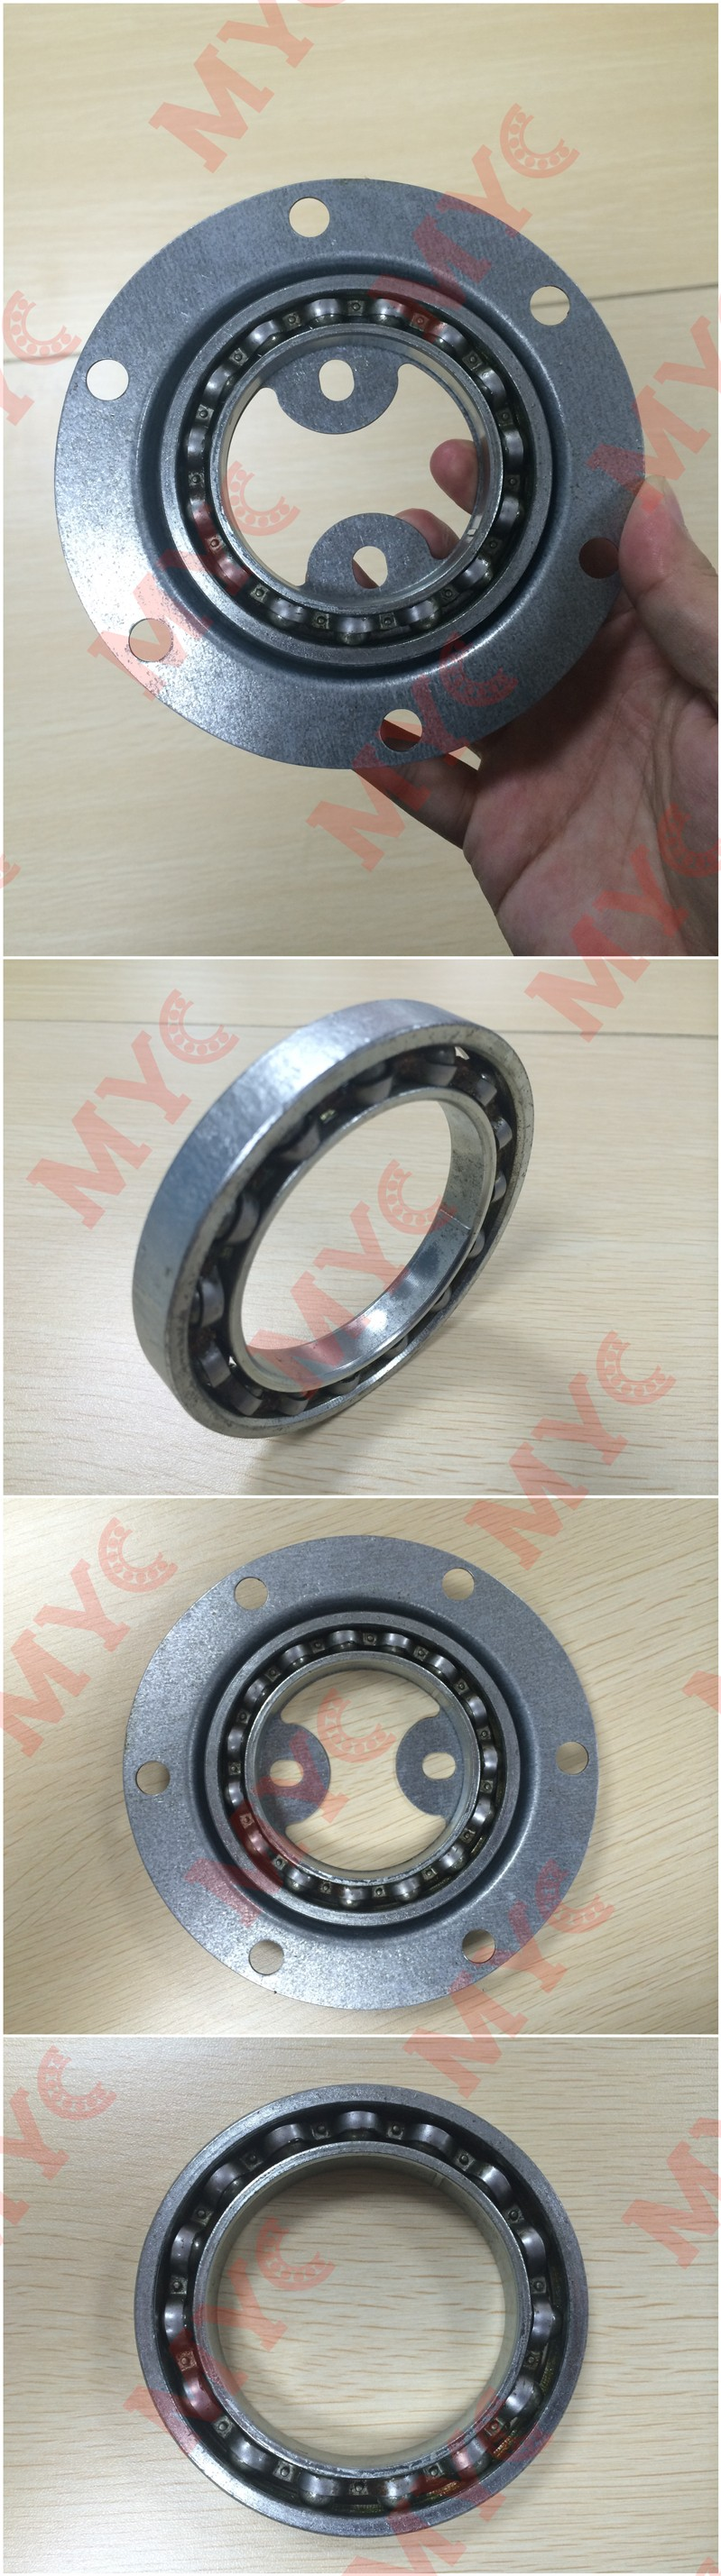 Alibaba Recomment Iron Bearing Zinc Plated For Rolling Door